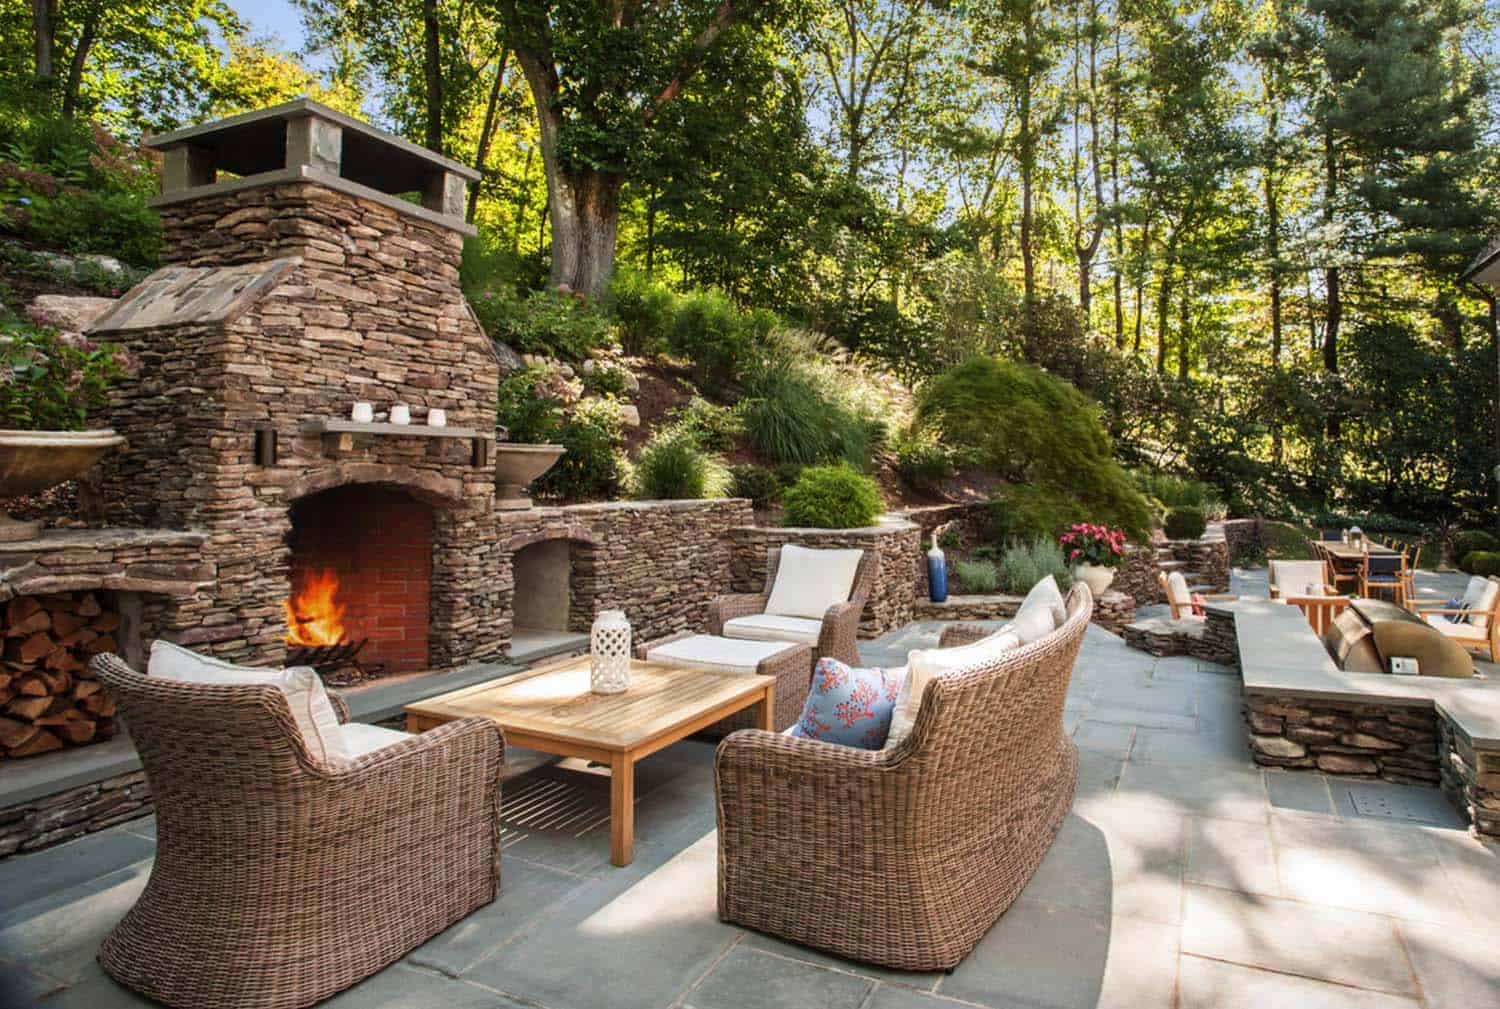 35 Brilliant and inspiring patio ideas for outdoor living ... on Outdoor Living Patio Ideas id=97578